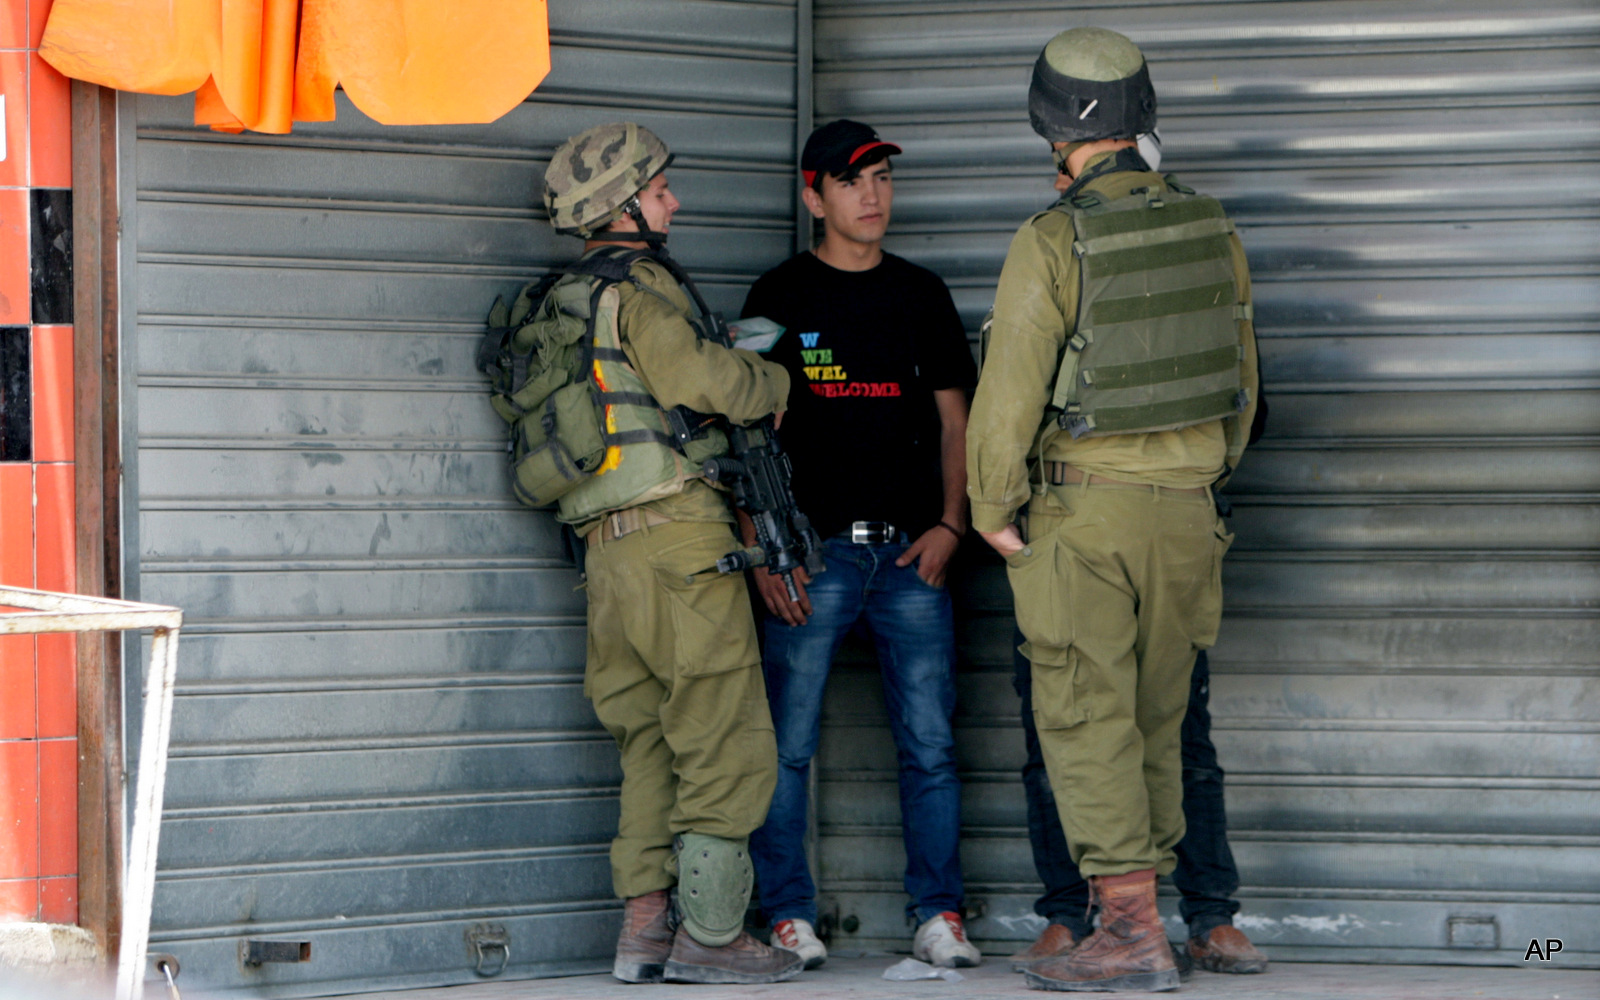 Israeli soldiers check the IDs of Palestinians near an Israeli checkpoint near Nablus, in the Israeli occupied West Bank, Tuesday, June 3, 2014.